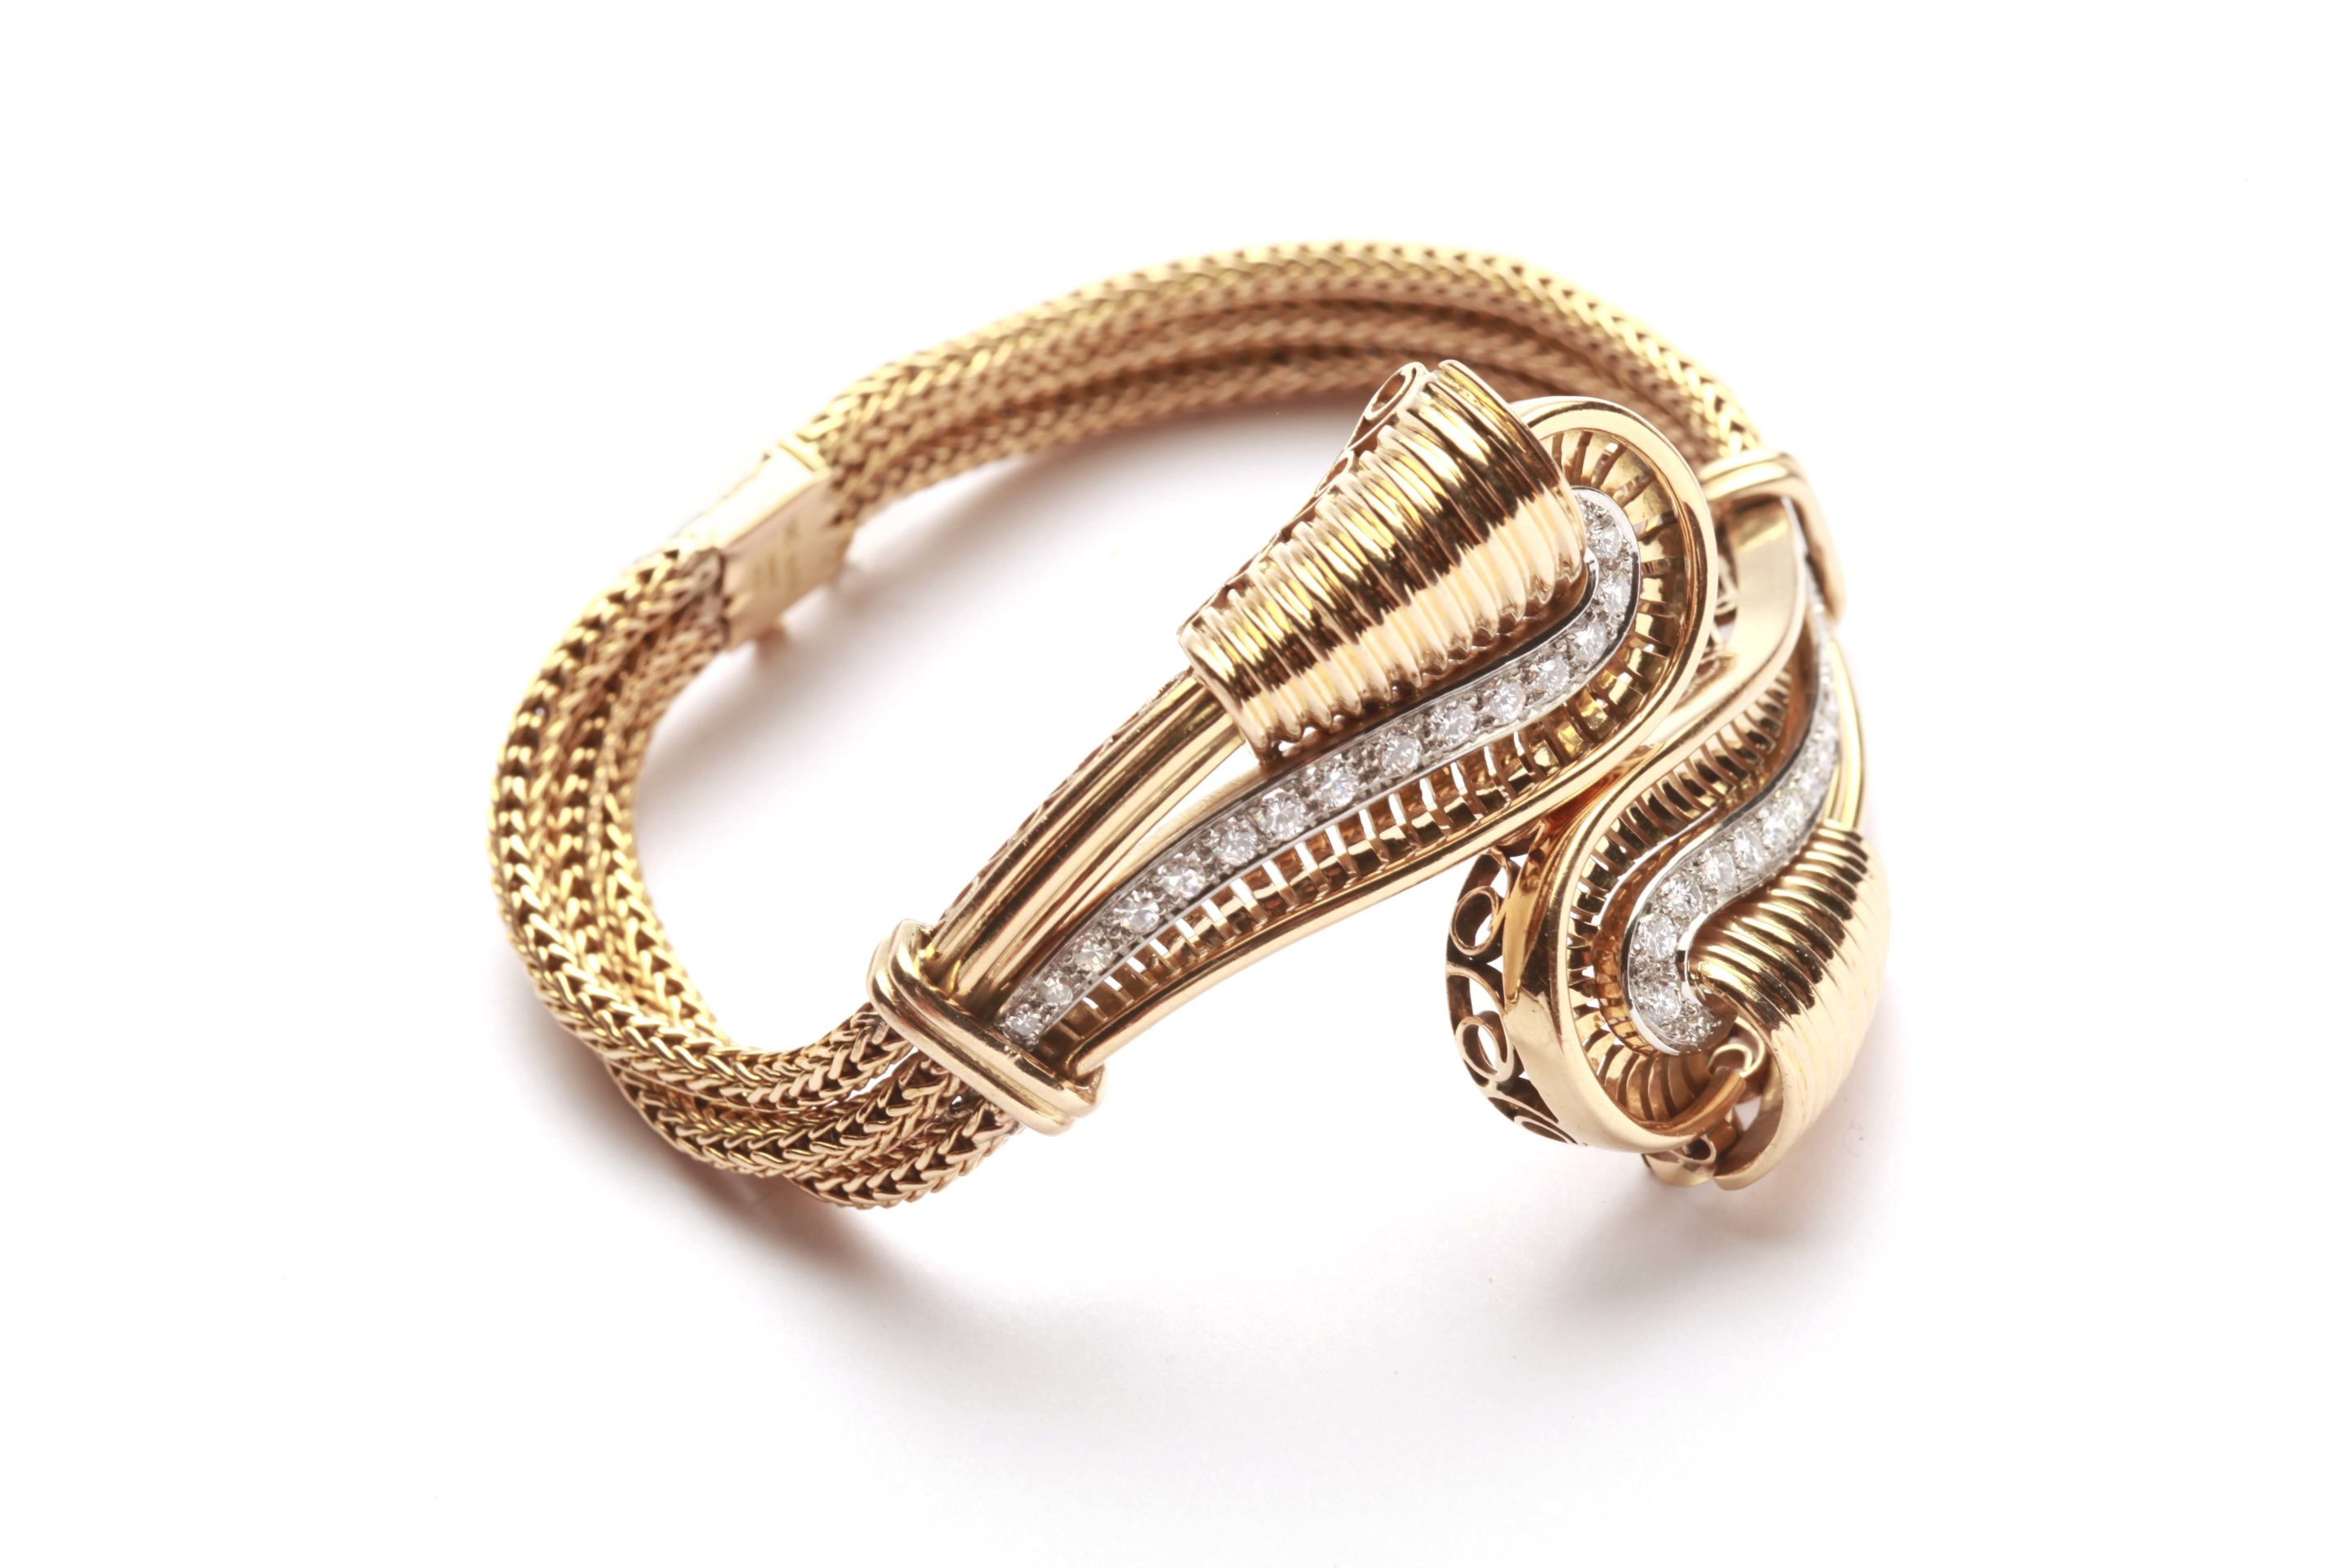 jewelry epis boucheron listings retro chain bracelet gold link bracelets